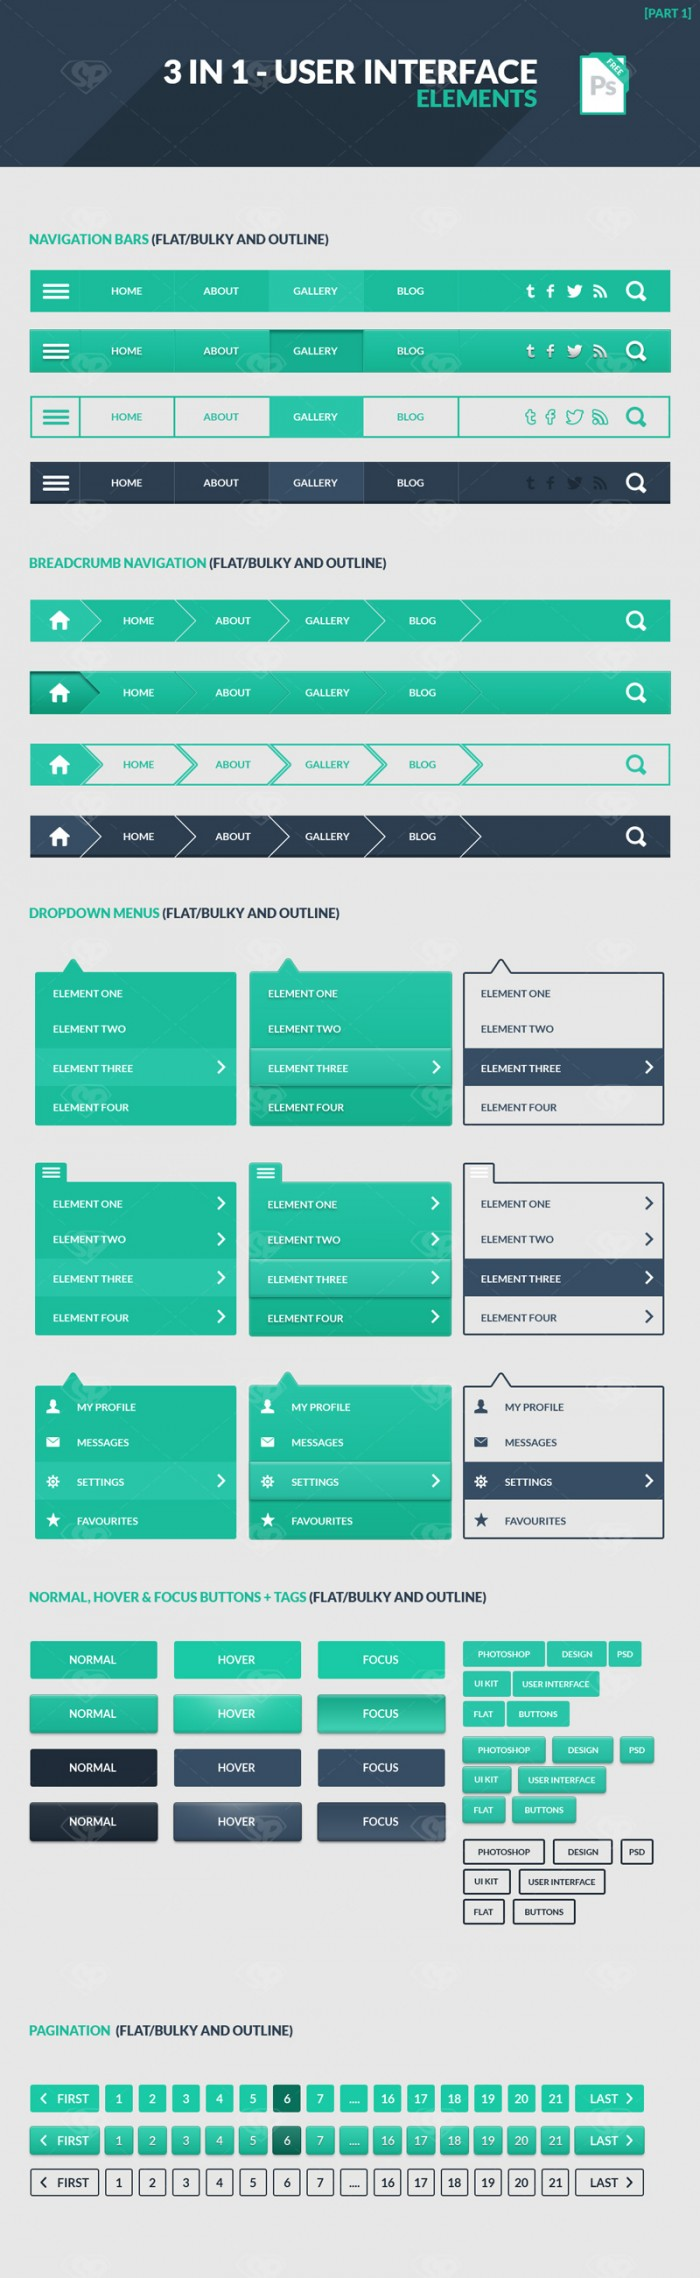 interfaces-graficas-ui-diseñadores-4